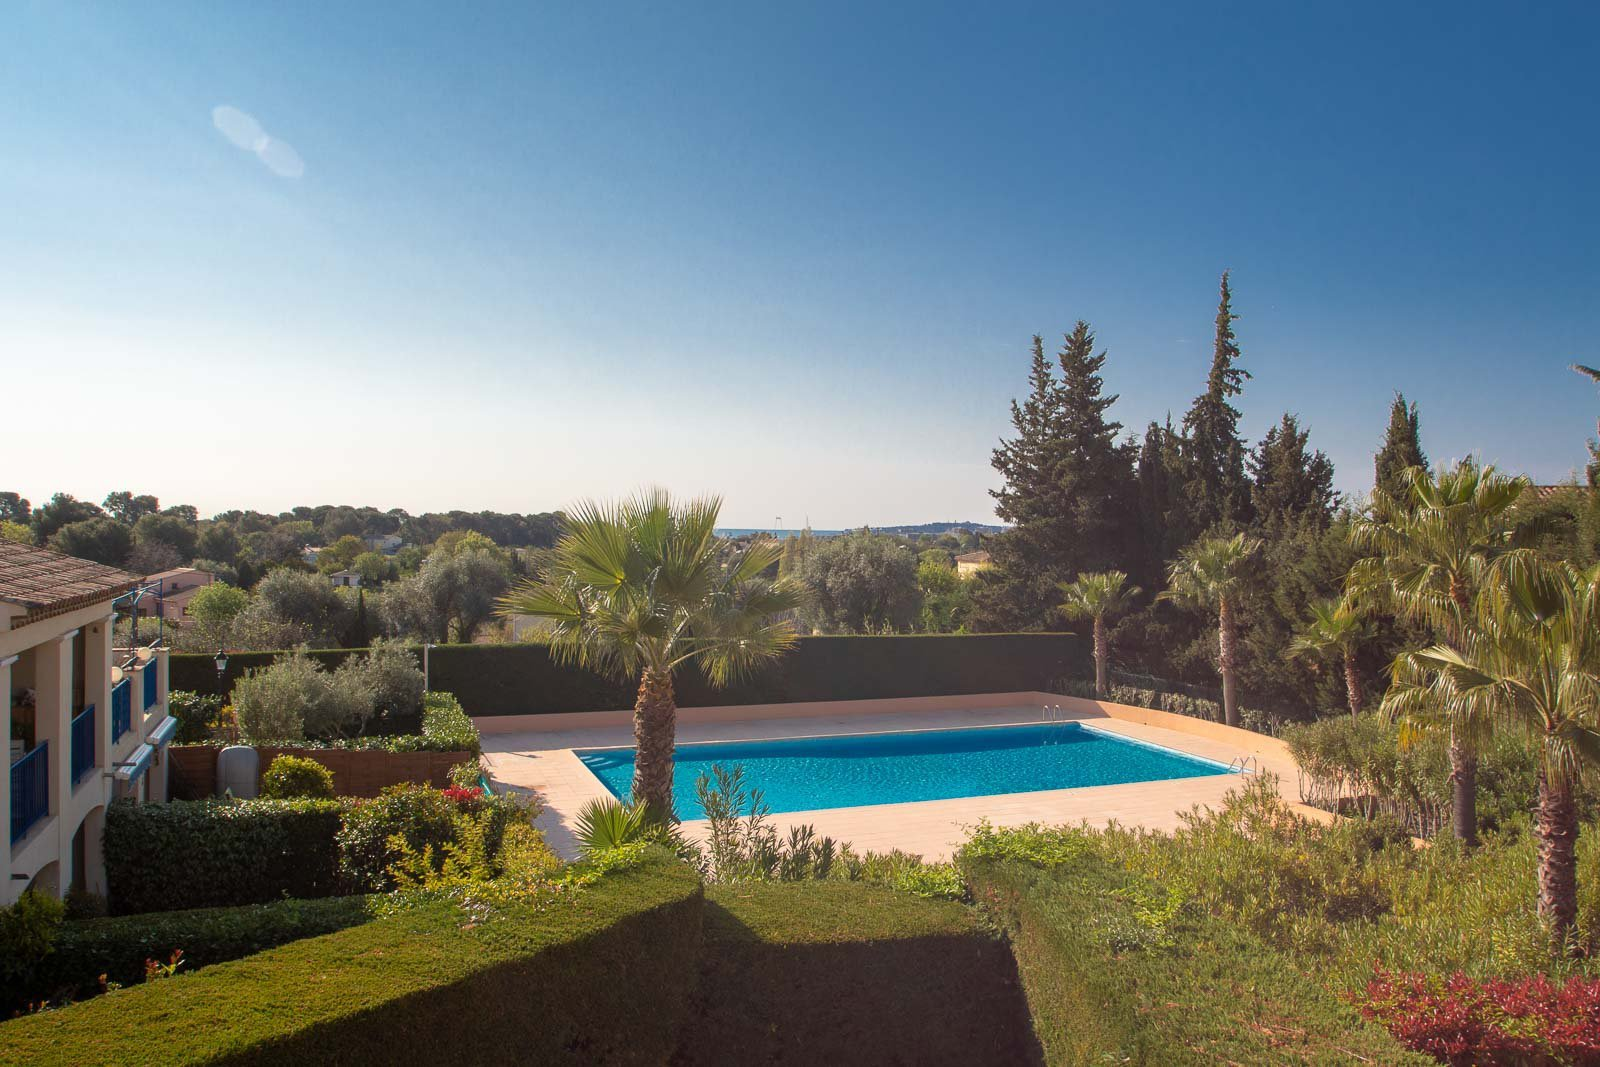 On the French riviera, villa for sales ready to use 2 bedrooms villa